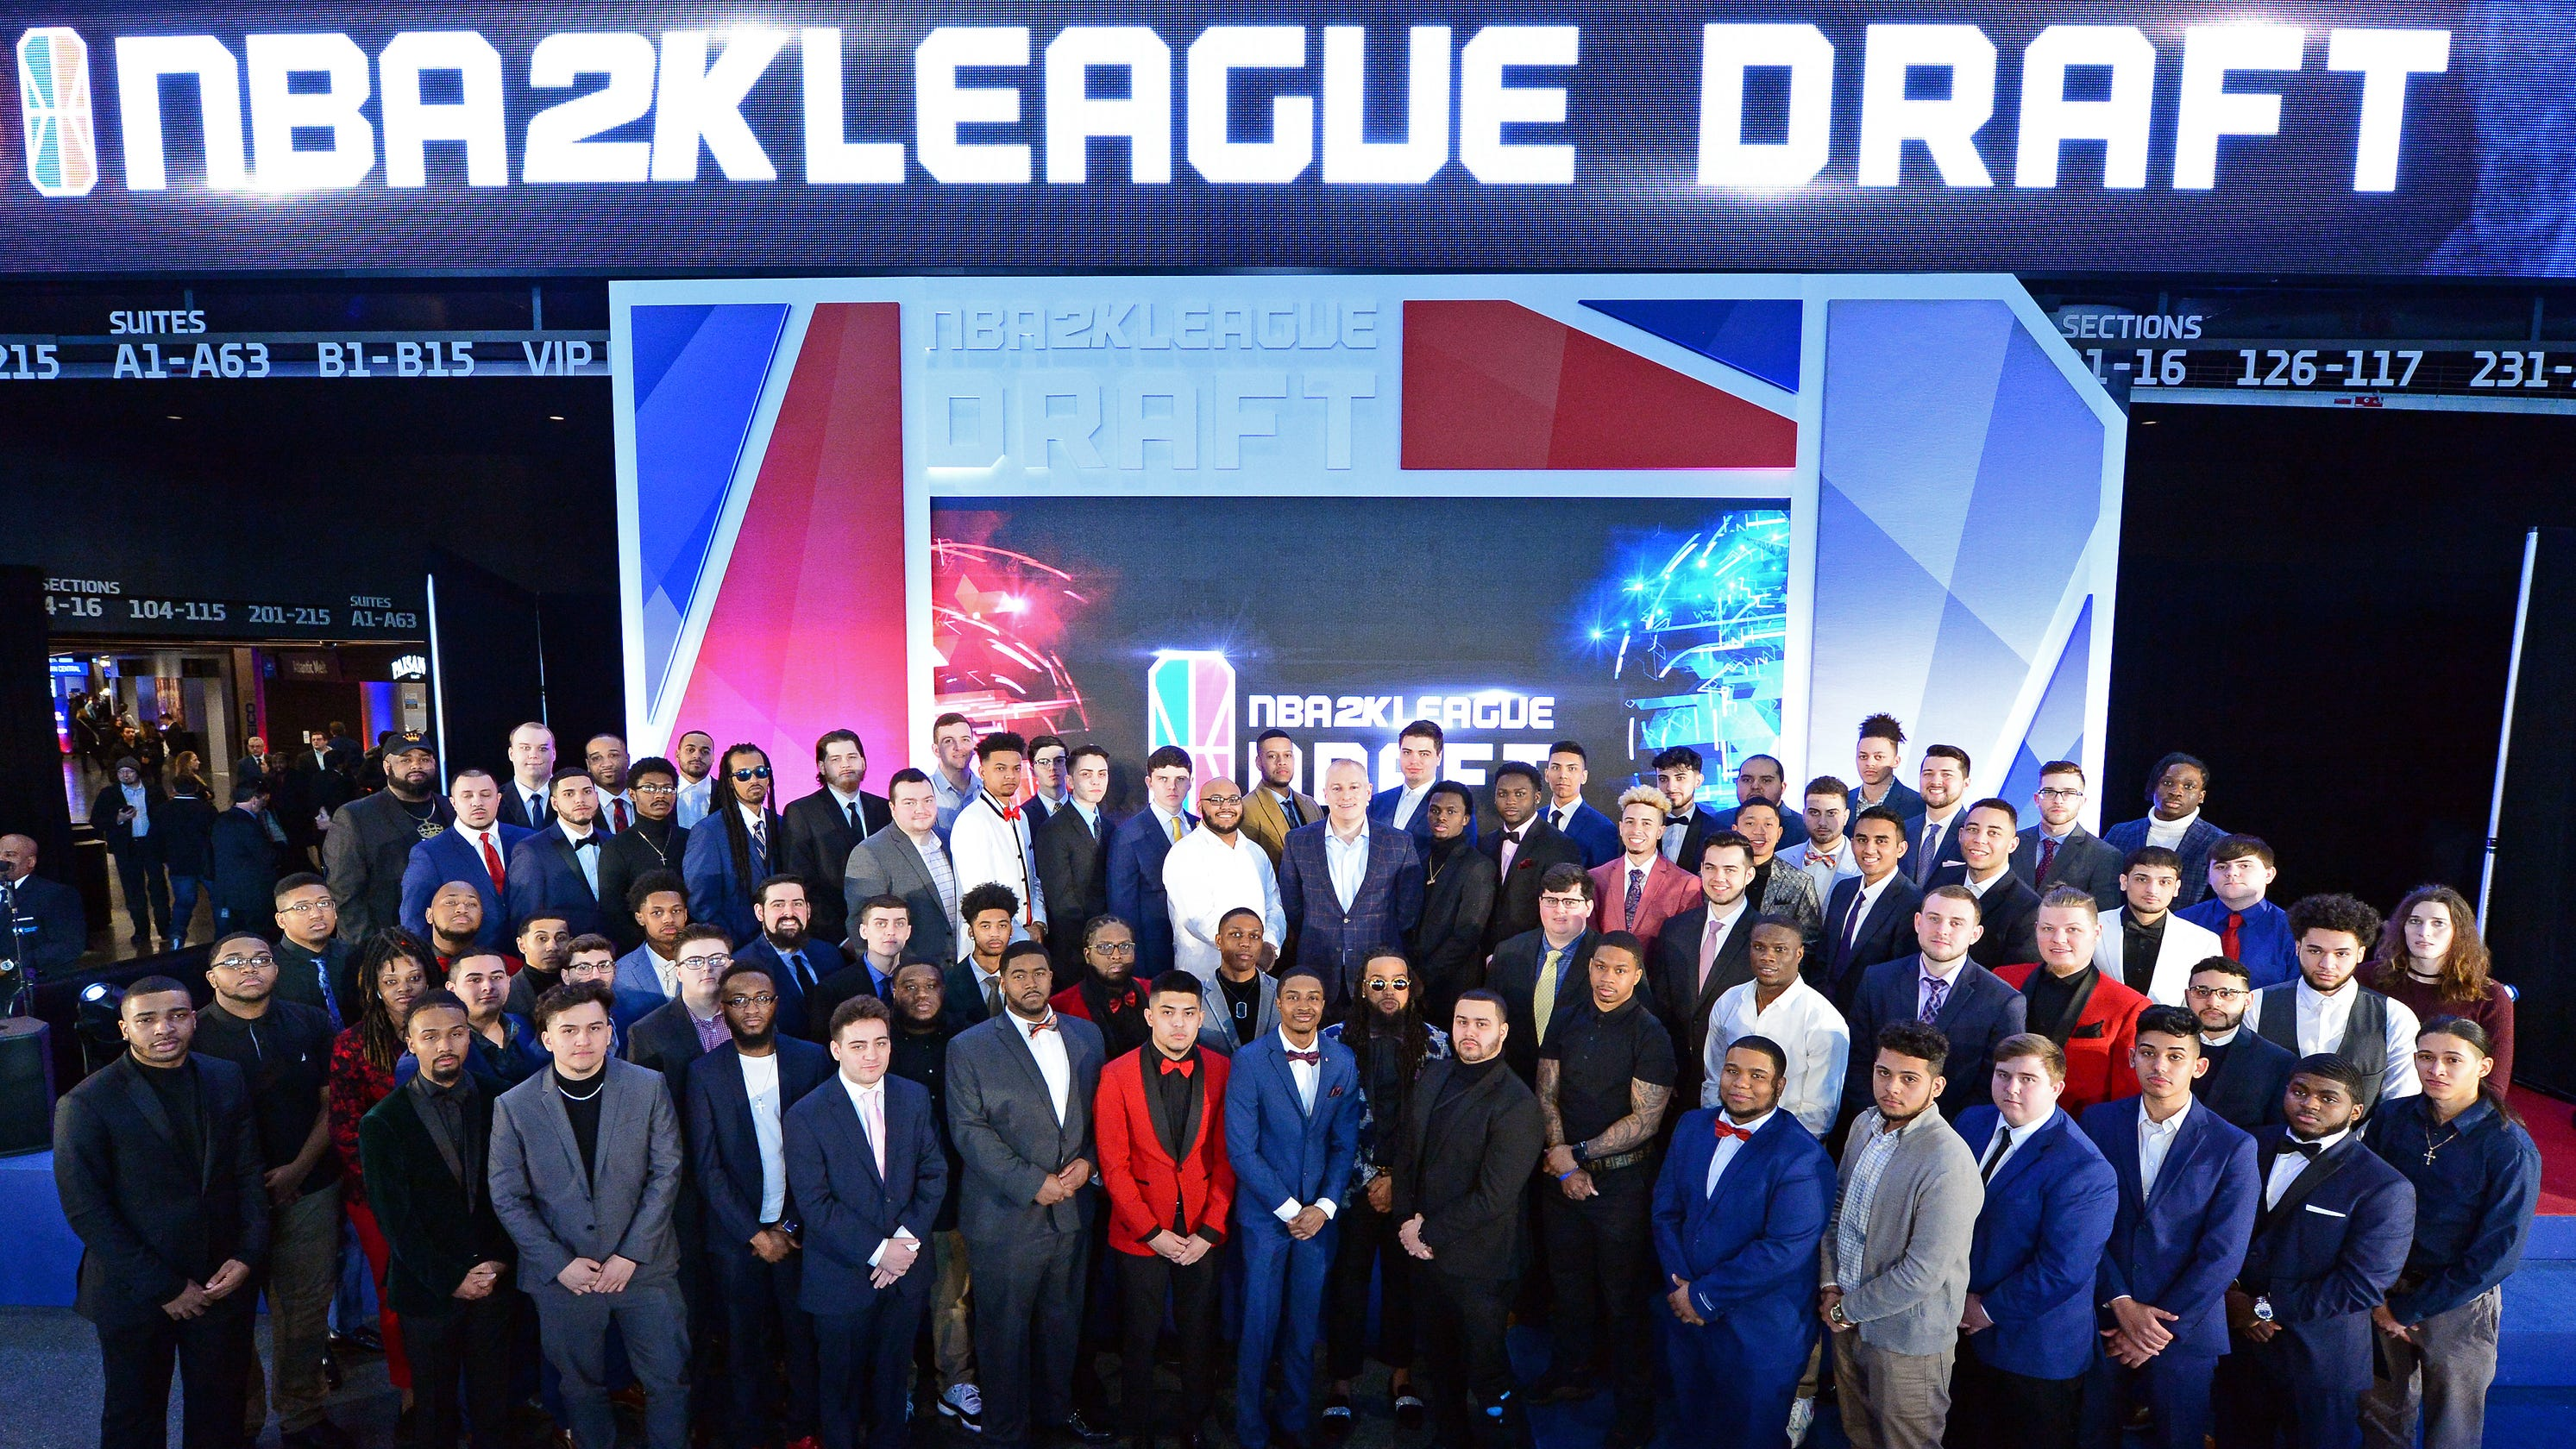 Top NBA 2K League draft pick and coach offer tips and tricks